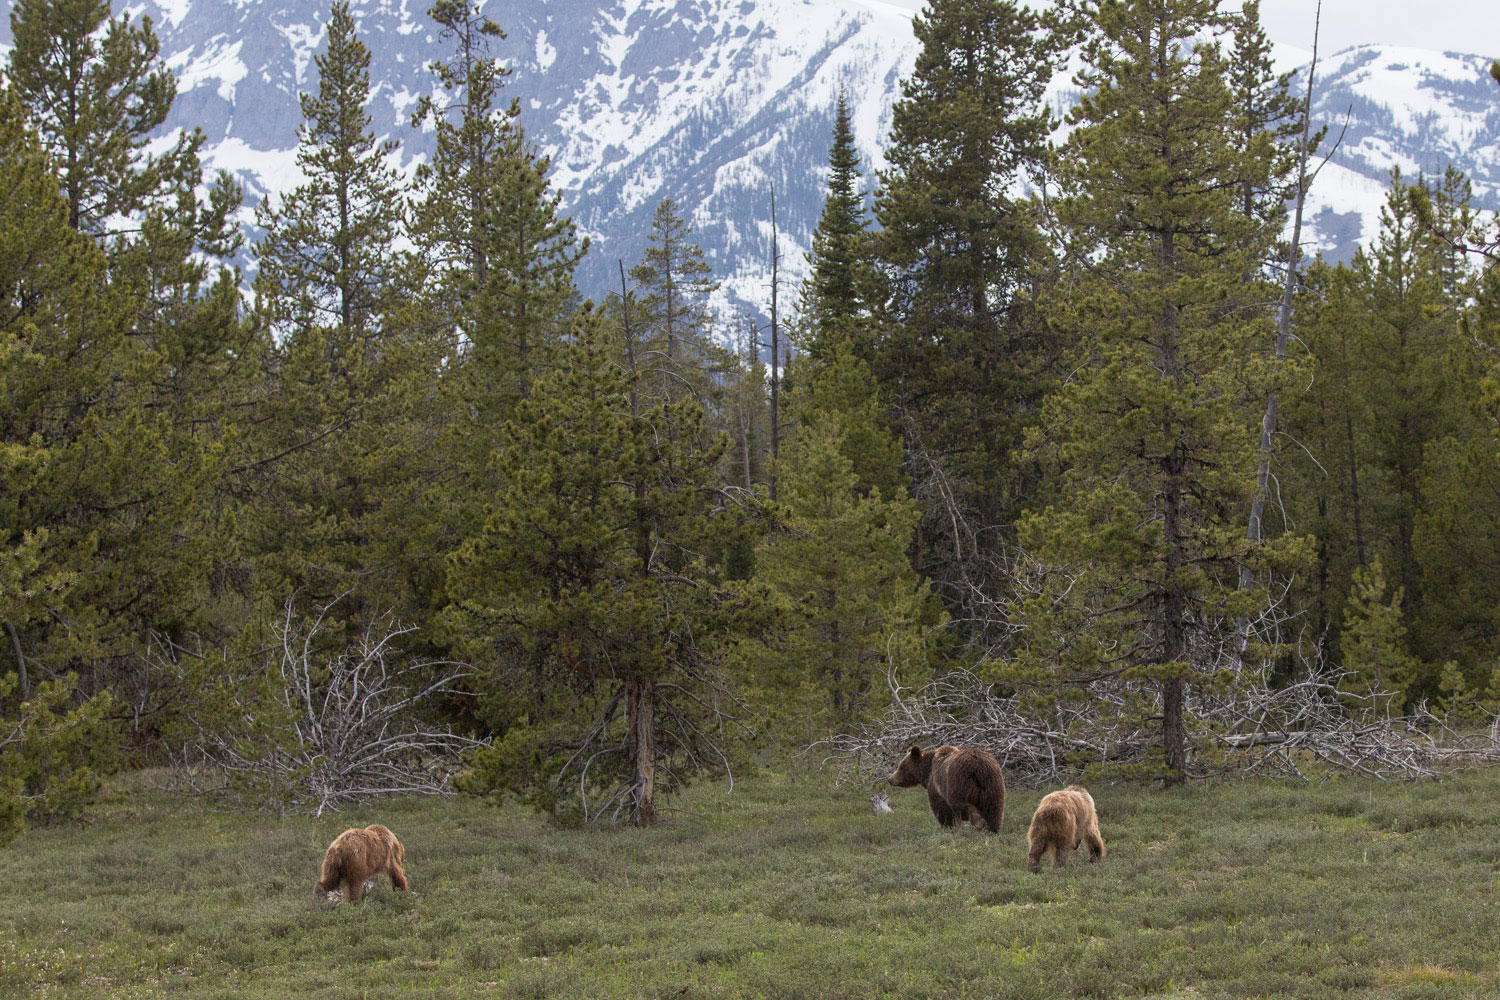 399, grizzly, bear, grand teton, photo, image, cub, 2018, photo